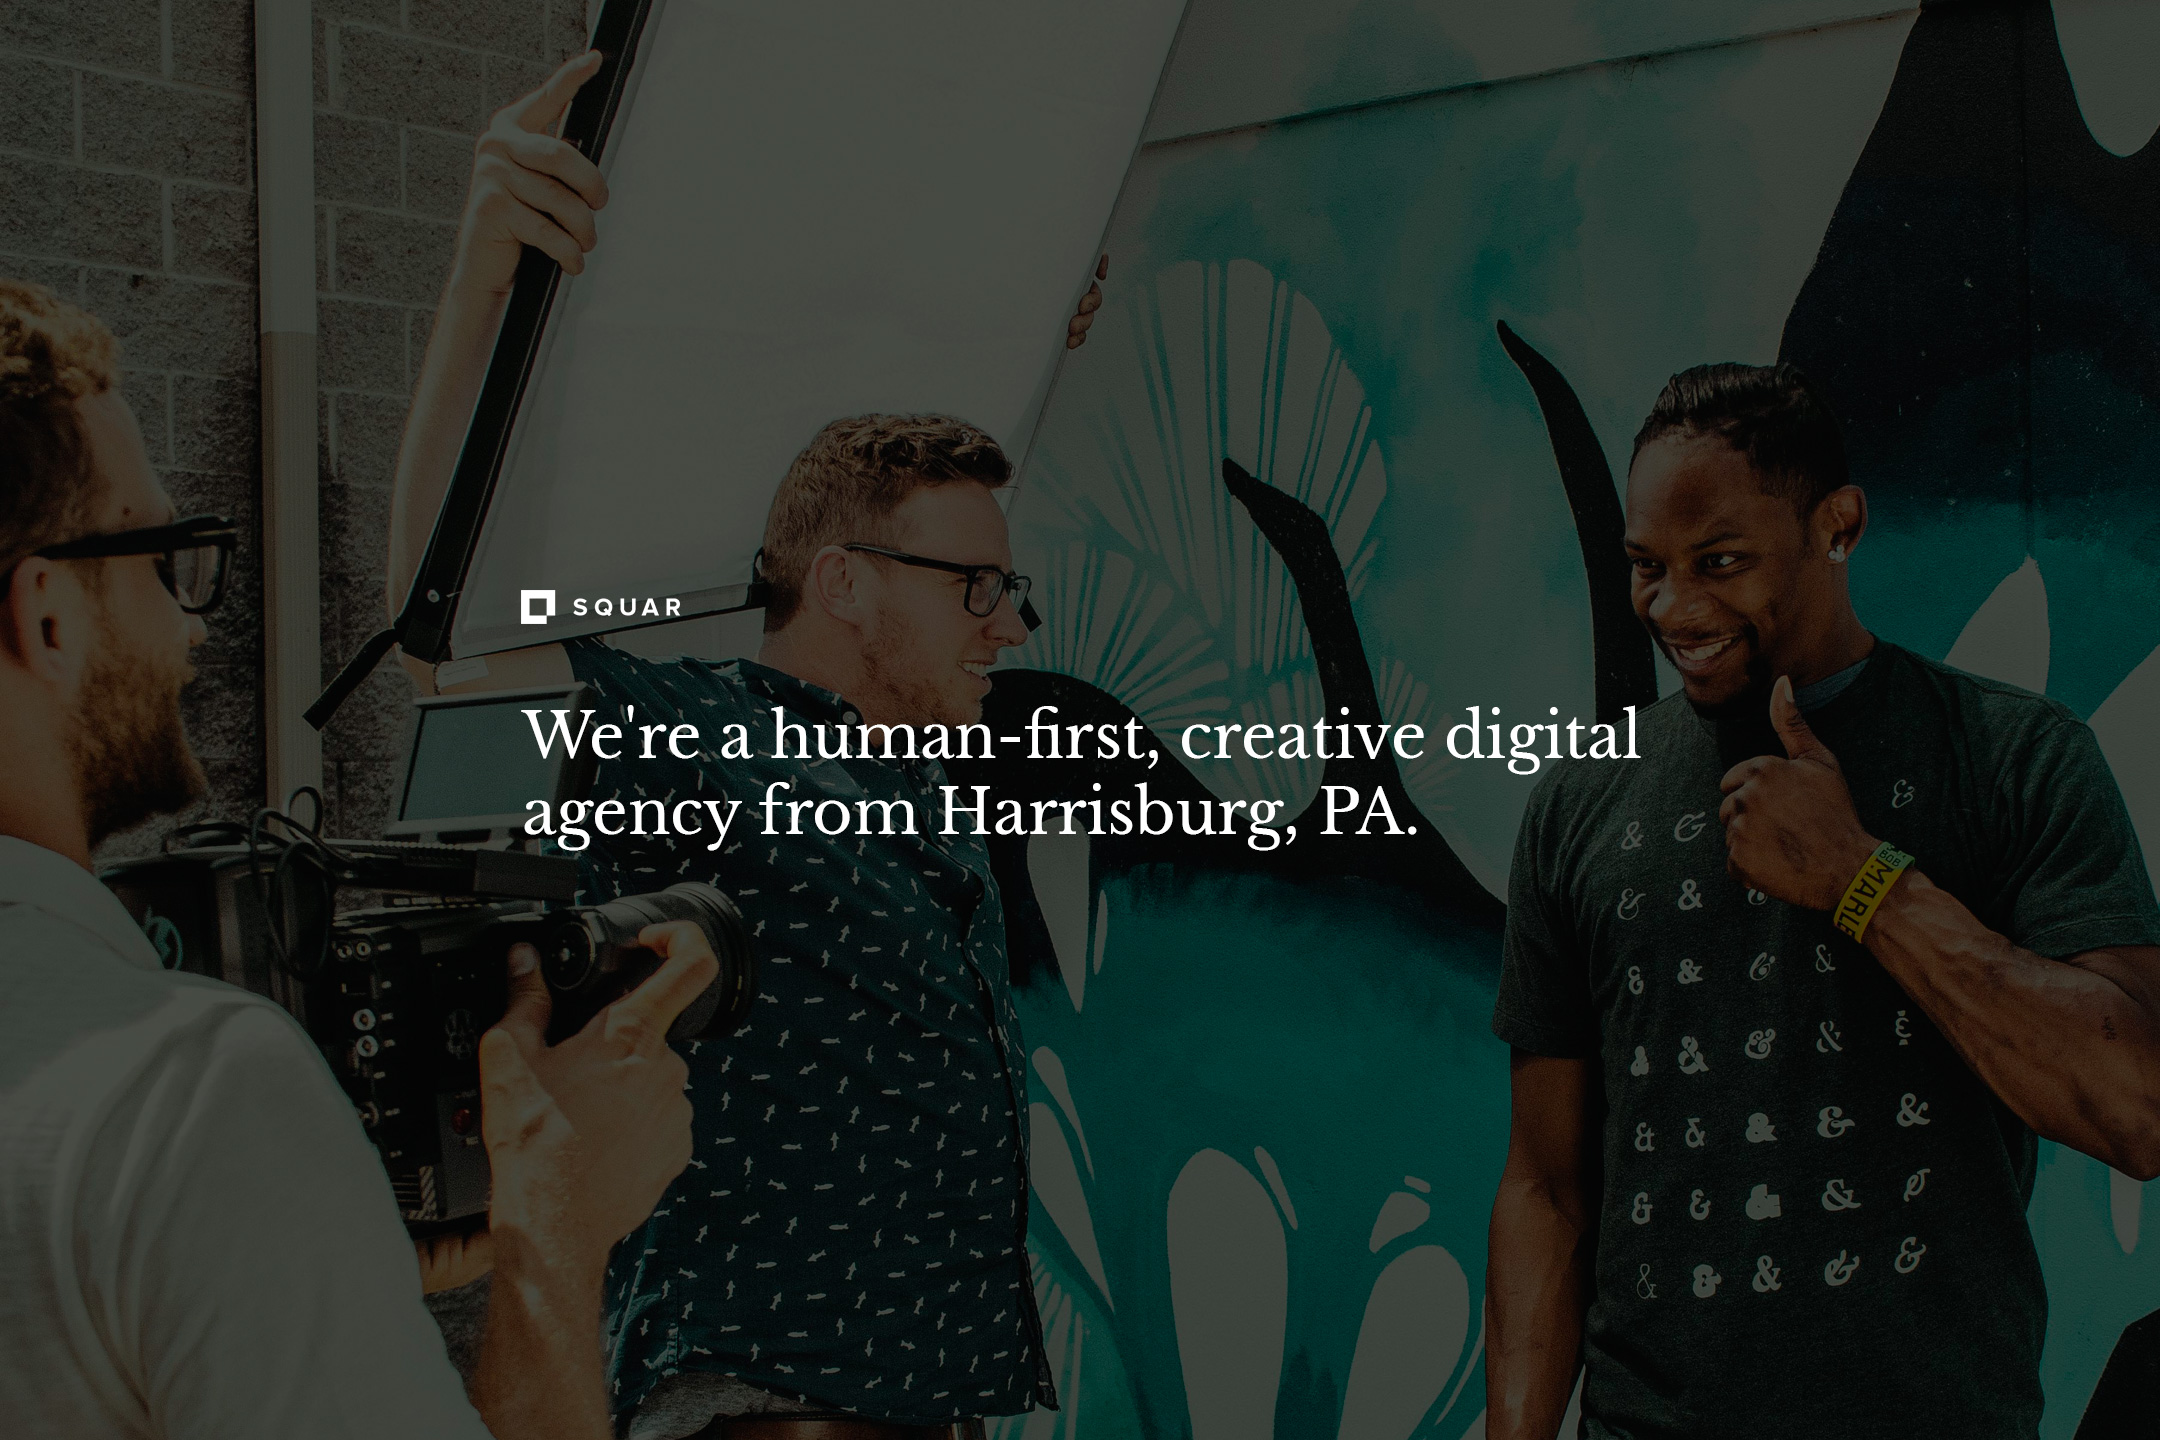 squar-creative-digital-agency-harrisburg-pa.jpg